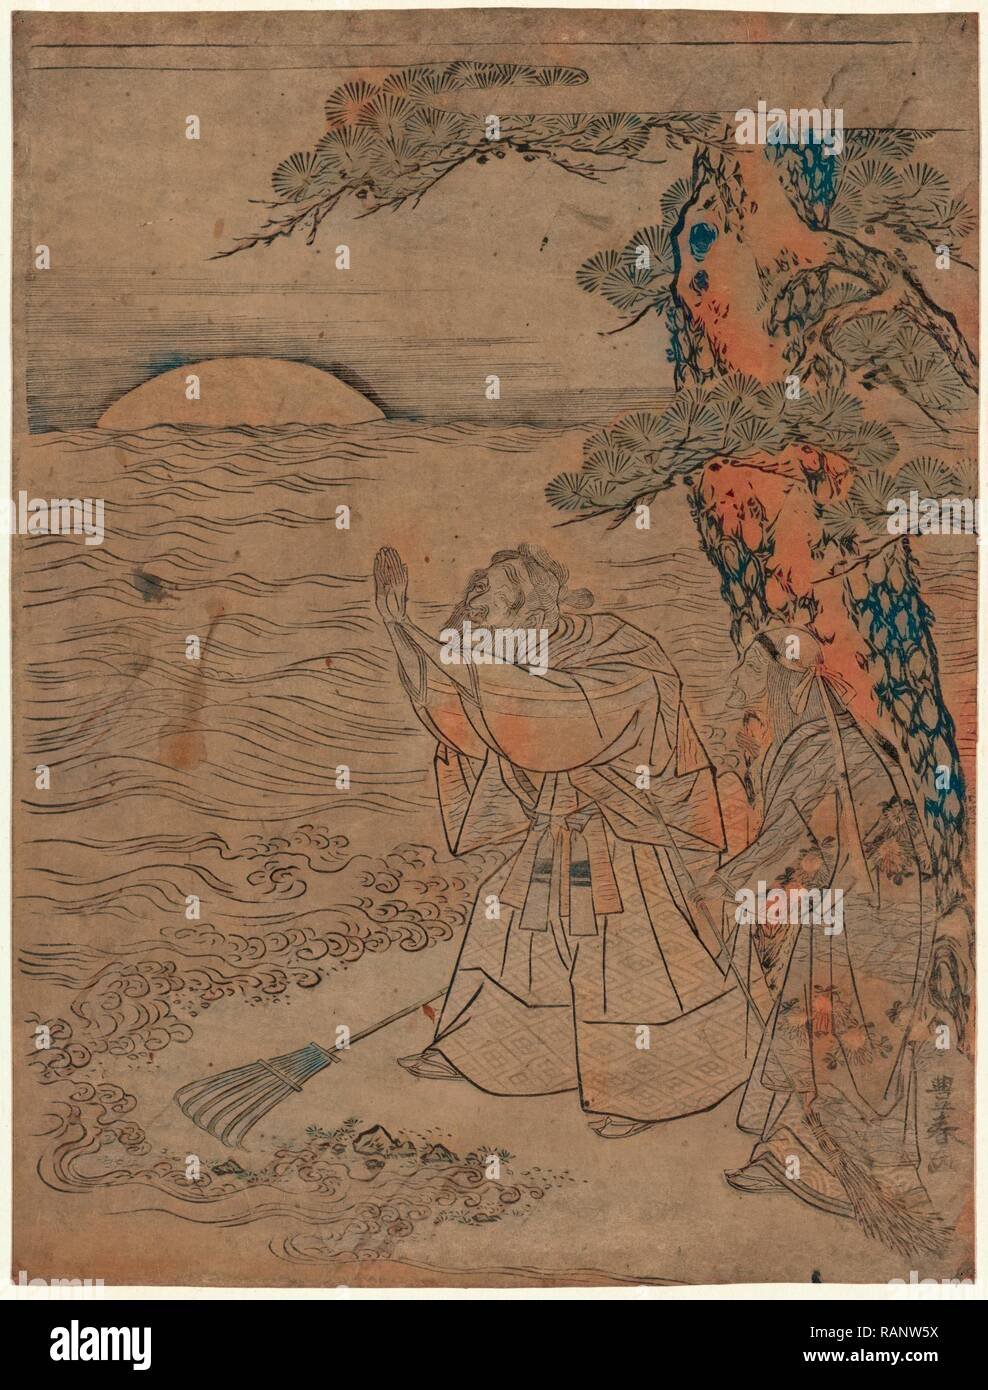 Takasago, Utagawa [Between 1770 and 1781], 1 Print: Woodcut, Color, 25.6 X 19.3, Print Shows Two Travelers Standing reimagined - Stock Image